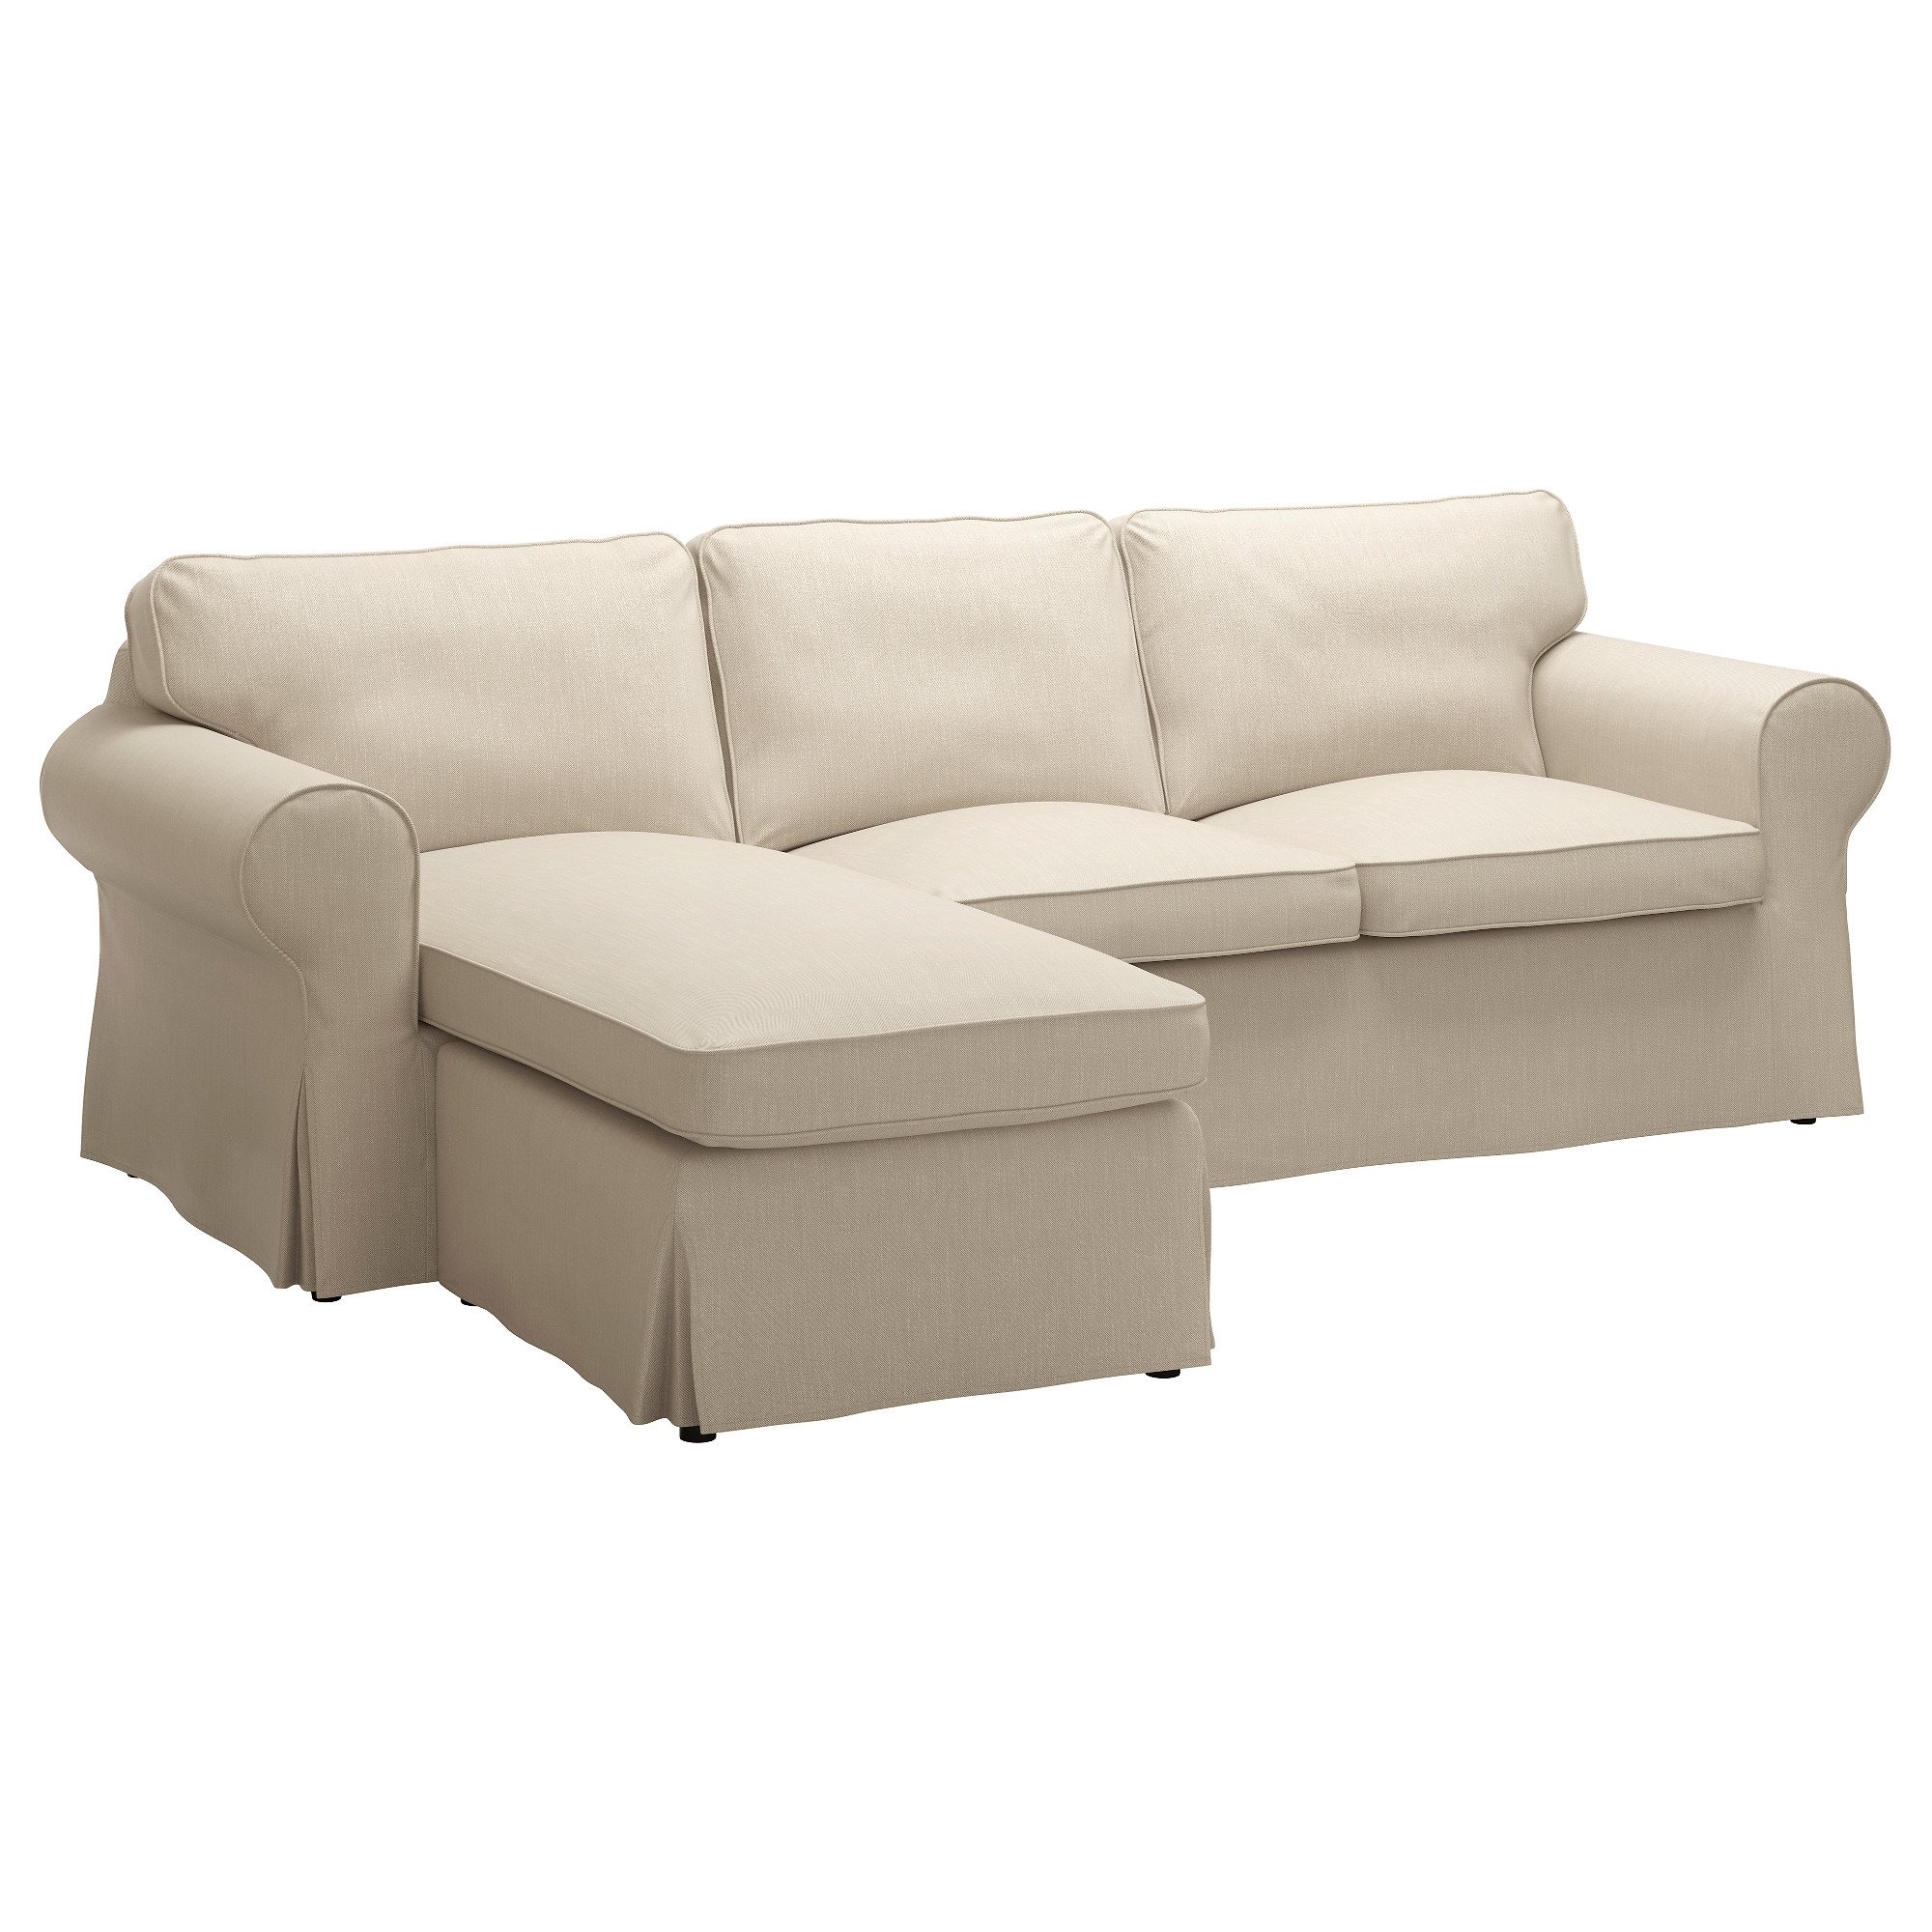 Widely Used Ektorp Sofa – With Chaise/nordvalla Light Blue – Ikea For Chaise Lounge Couches (View 7 of 15)